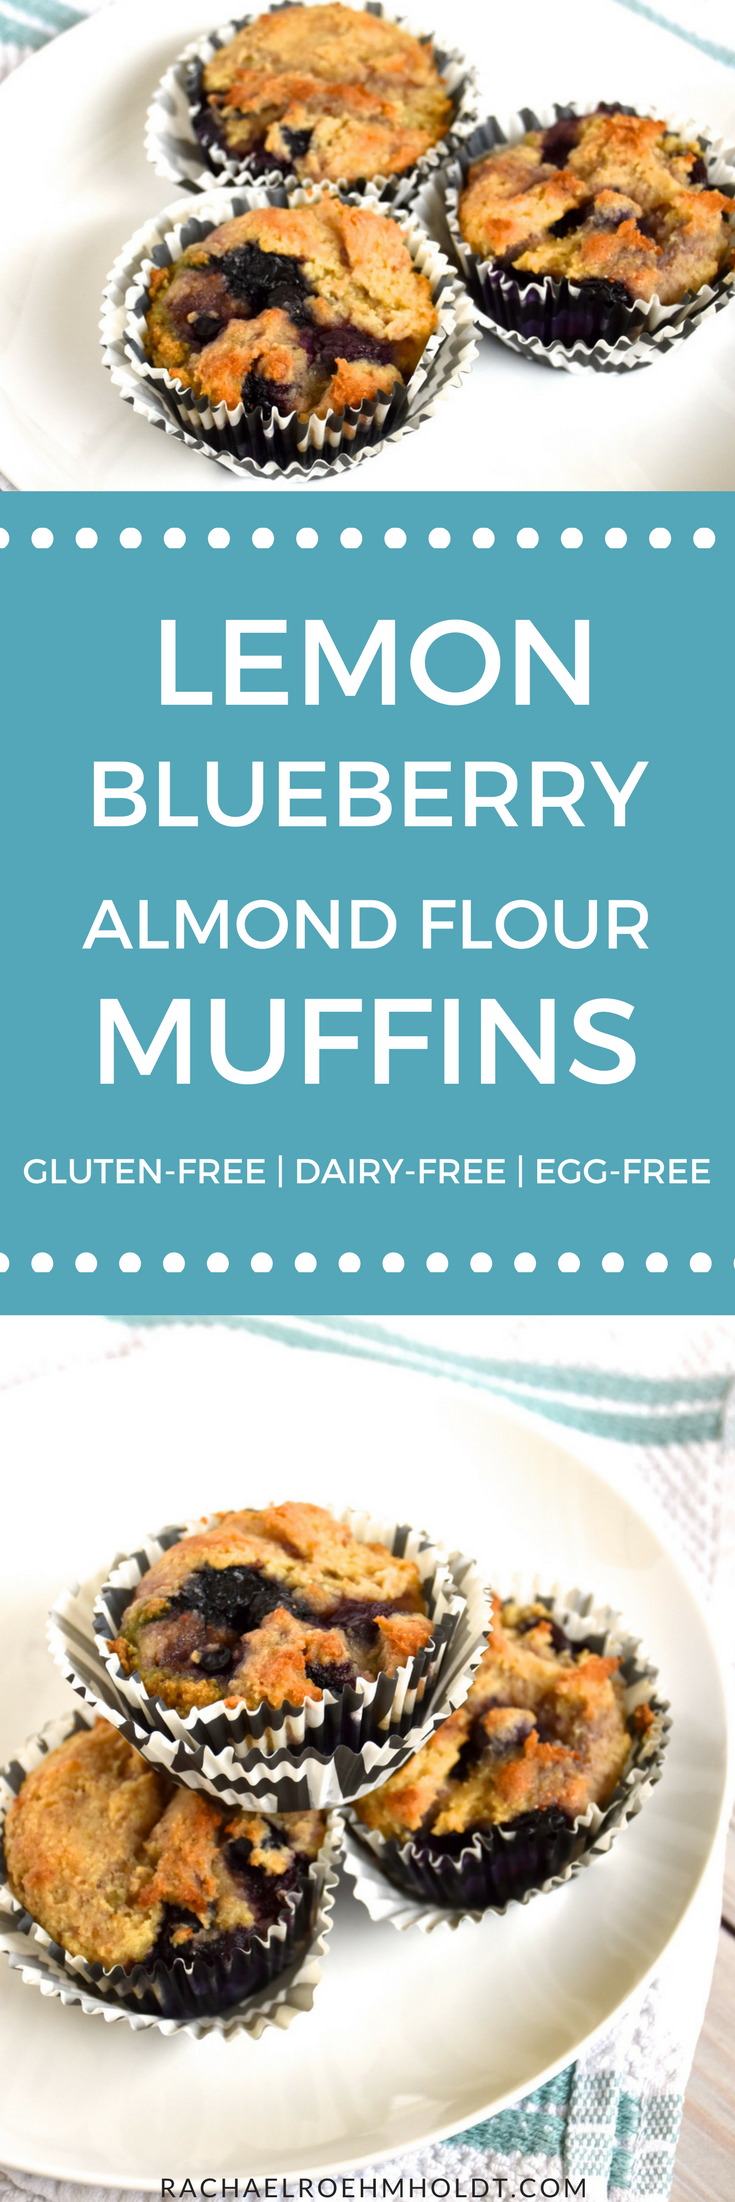 Looking for a delicious gluten-free dairy-free egg-free muffin recipe? Look no further! Try this lemon blueberry muffin recipe that is easy to put together, kid-tested, husband approved, super healthy AND delicious! Click through for the full recipe.